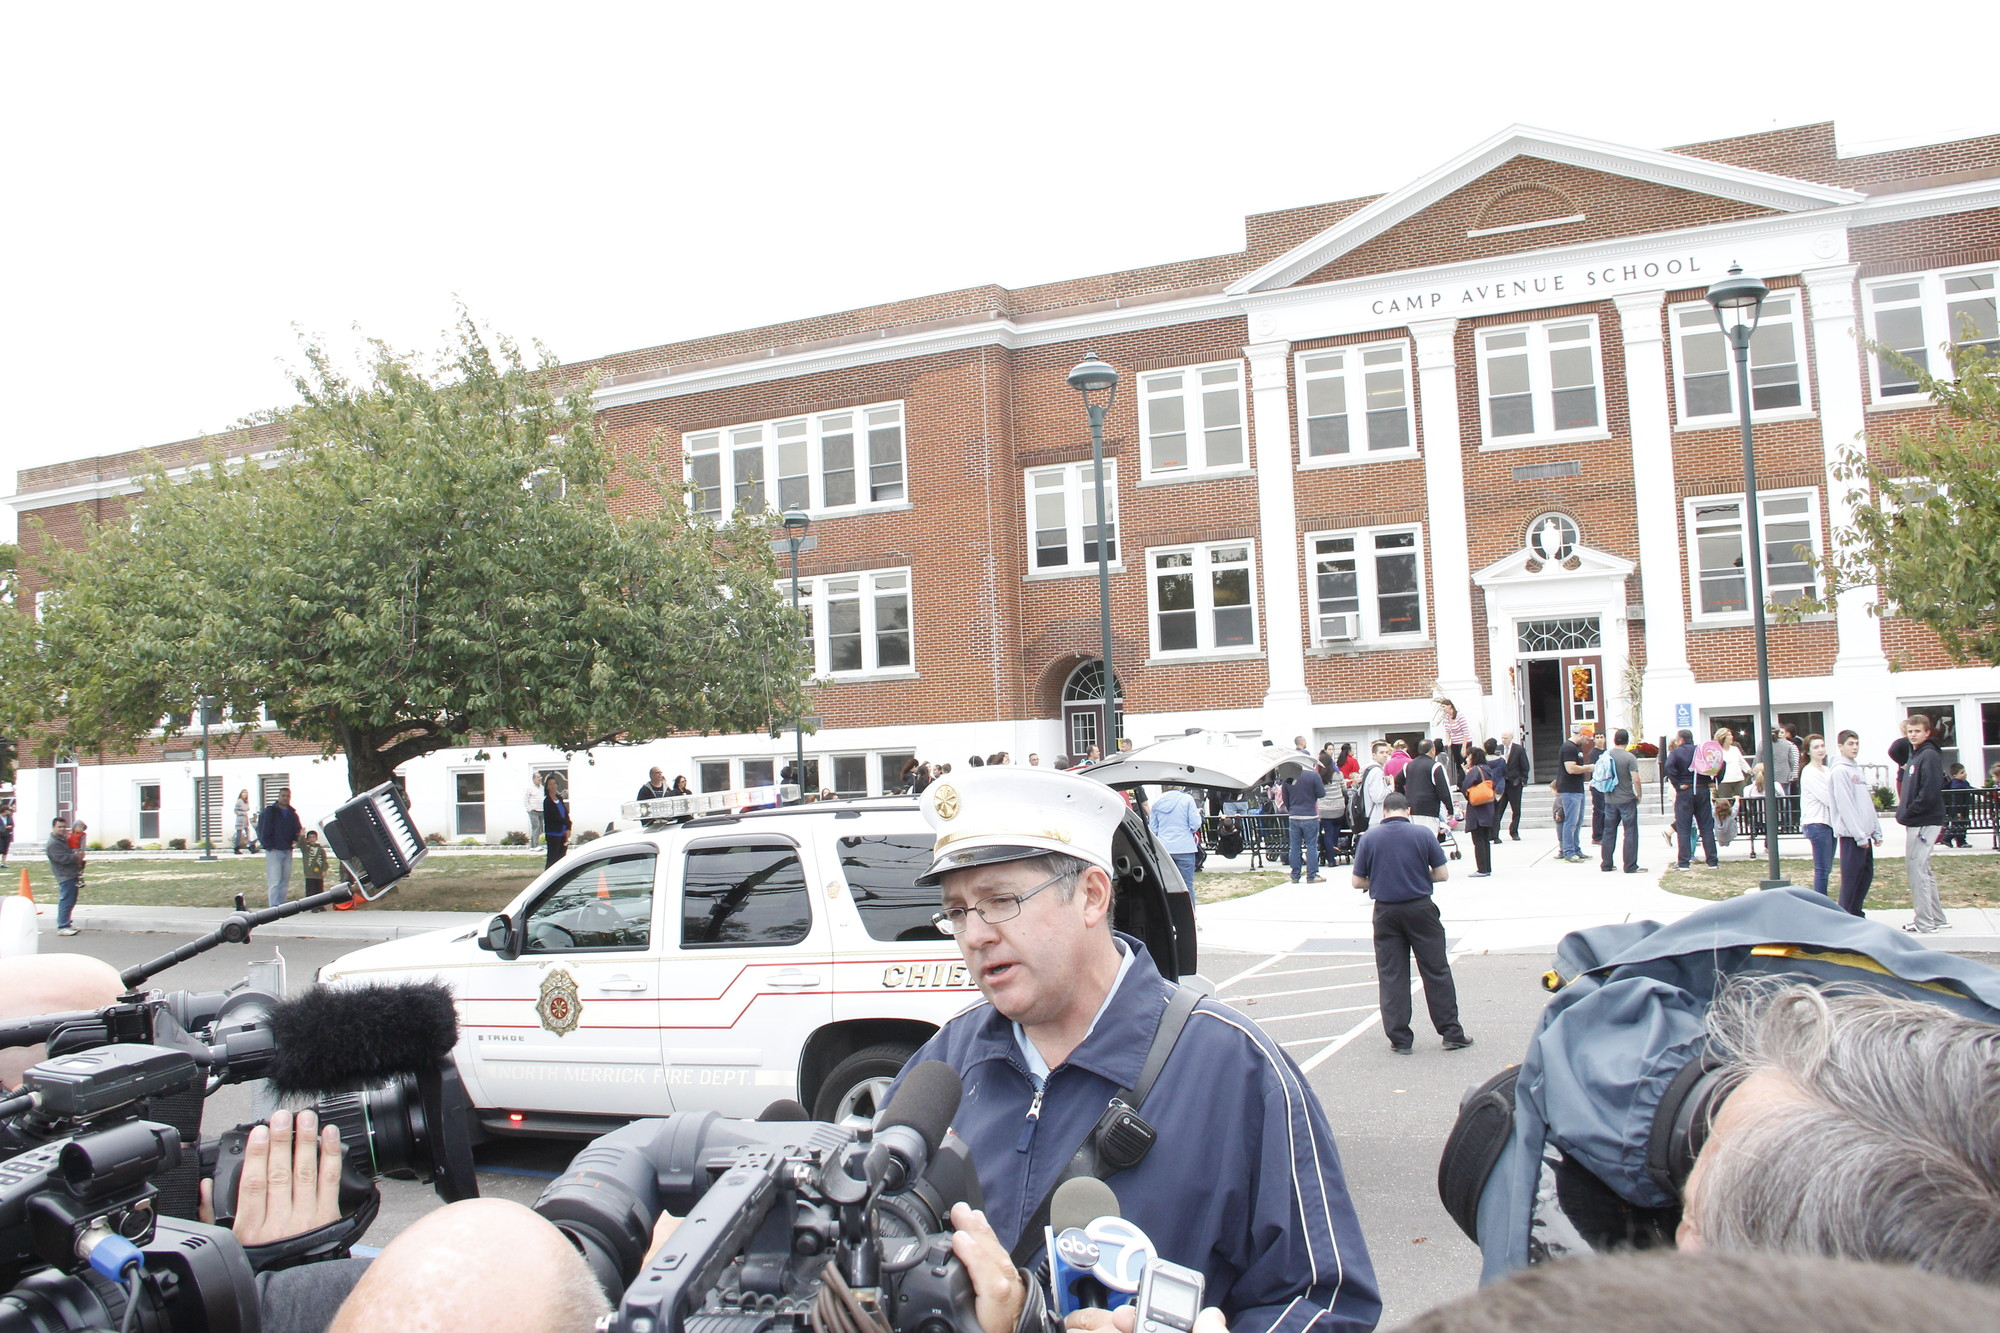 James Rogers, first assistant chief of the North Merrick Fire Department, addressed reporters Thursday outside Camp Avenue School.